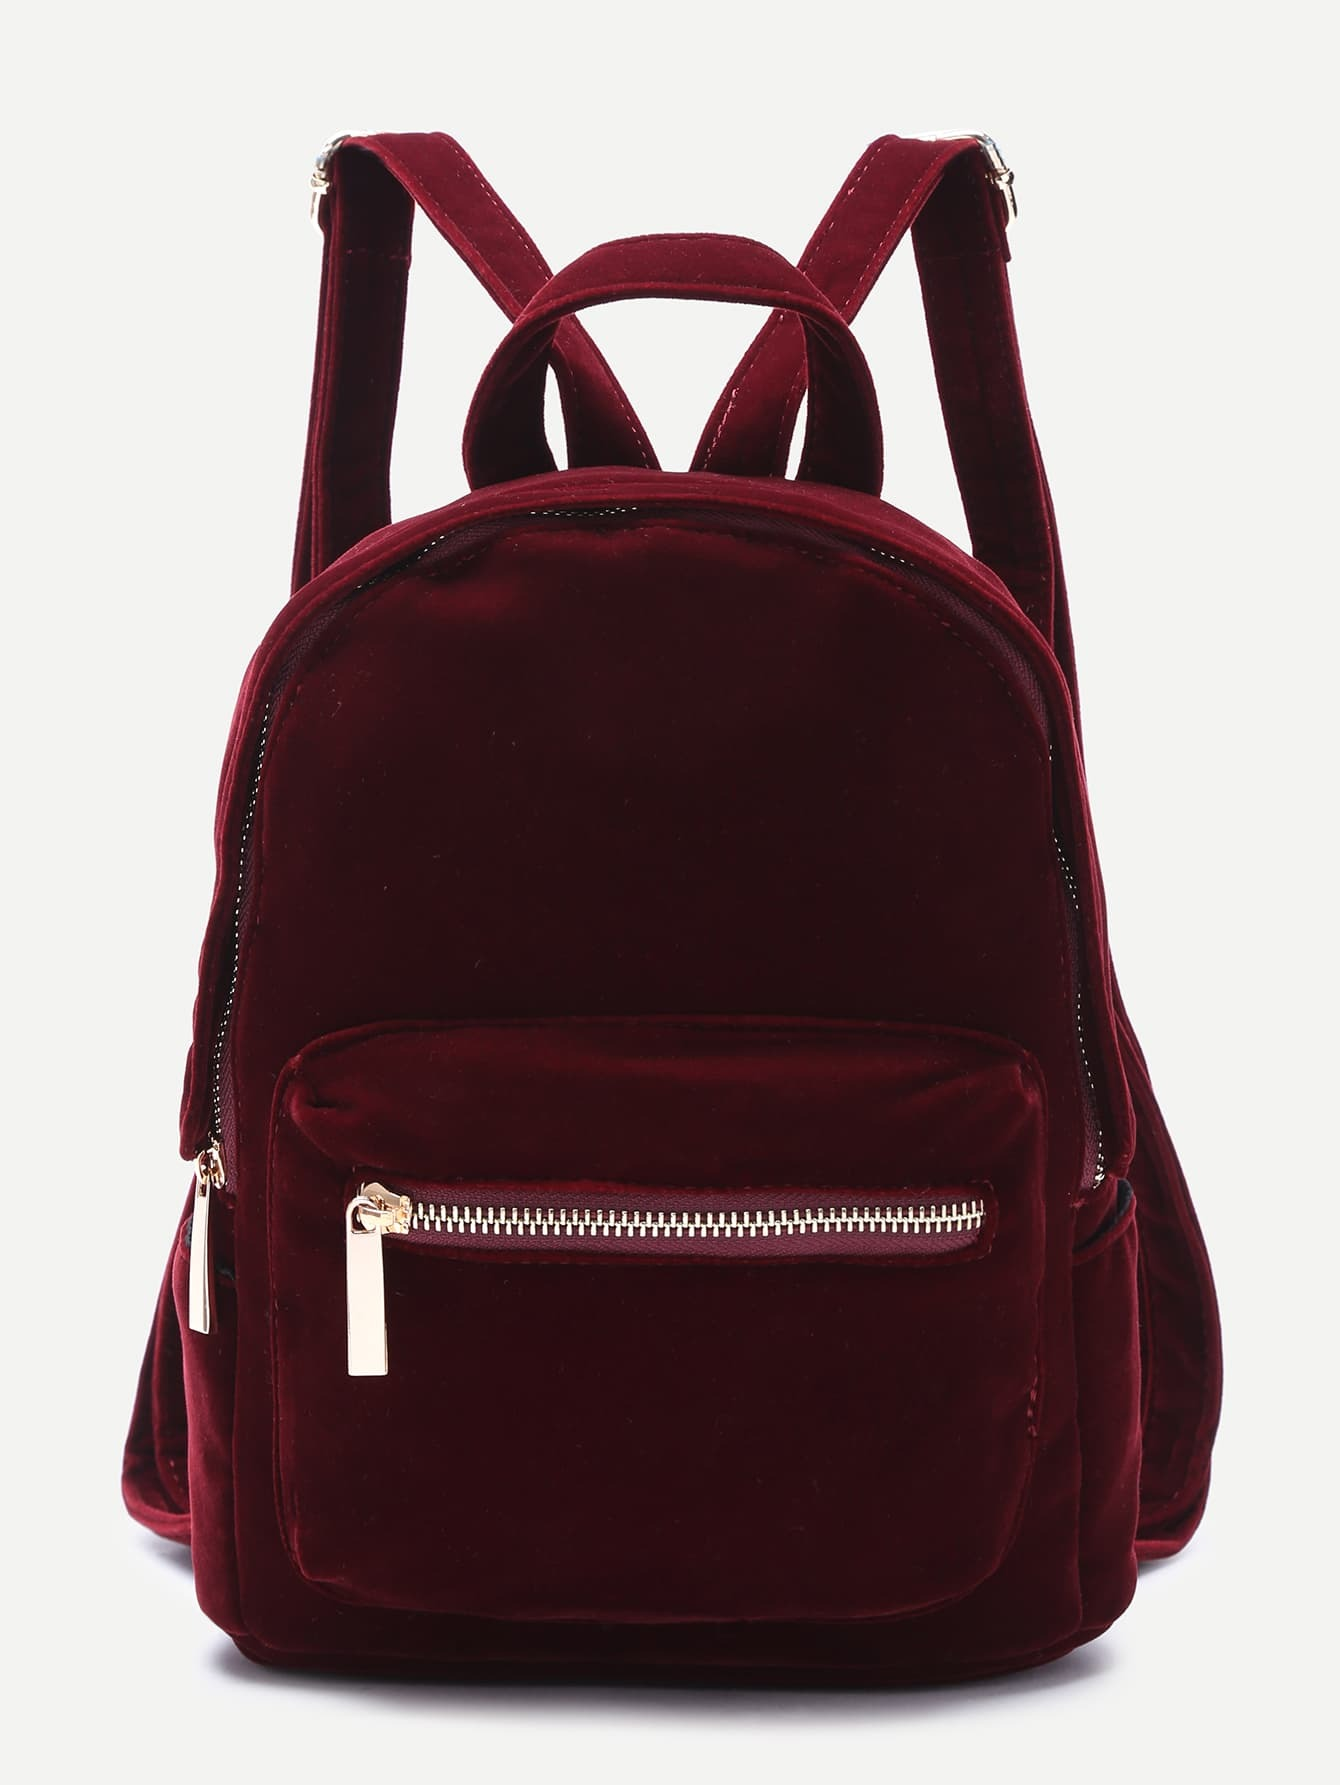 burgundy pocket front double handle velvet backpack emmacloth women fast fashion online. Black Bedroom Furniture Sets. Home Design Ideas